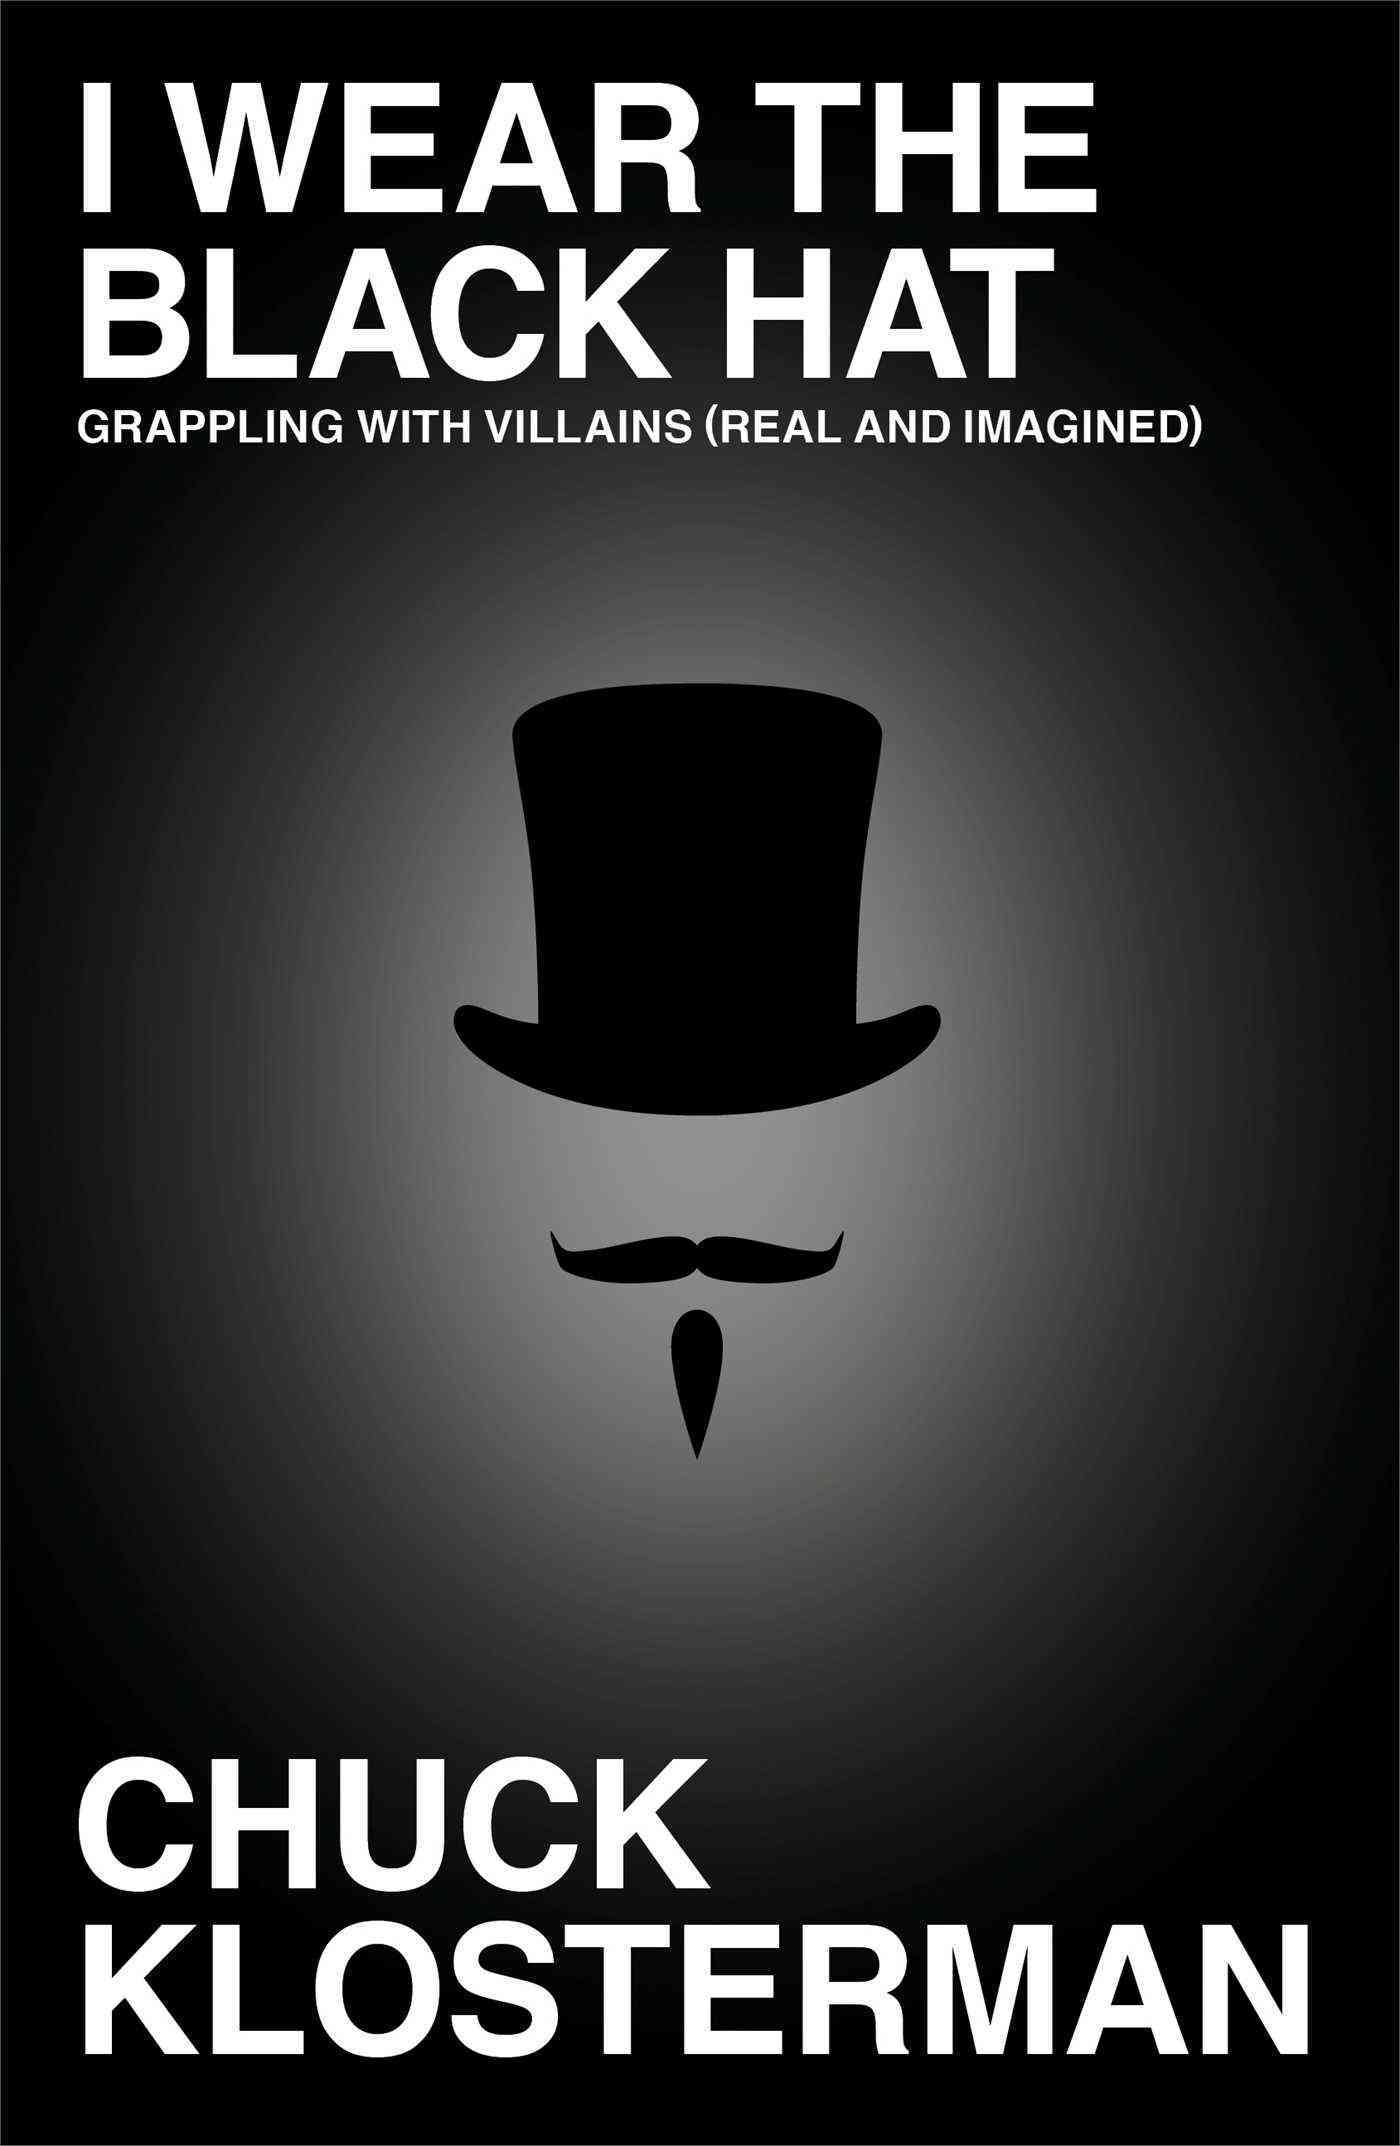 I Wear the Black Hat: Grappling With Villains (Real and Imagined) (Hardcover)